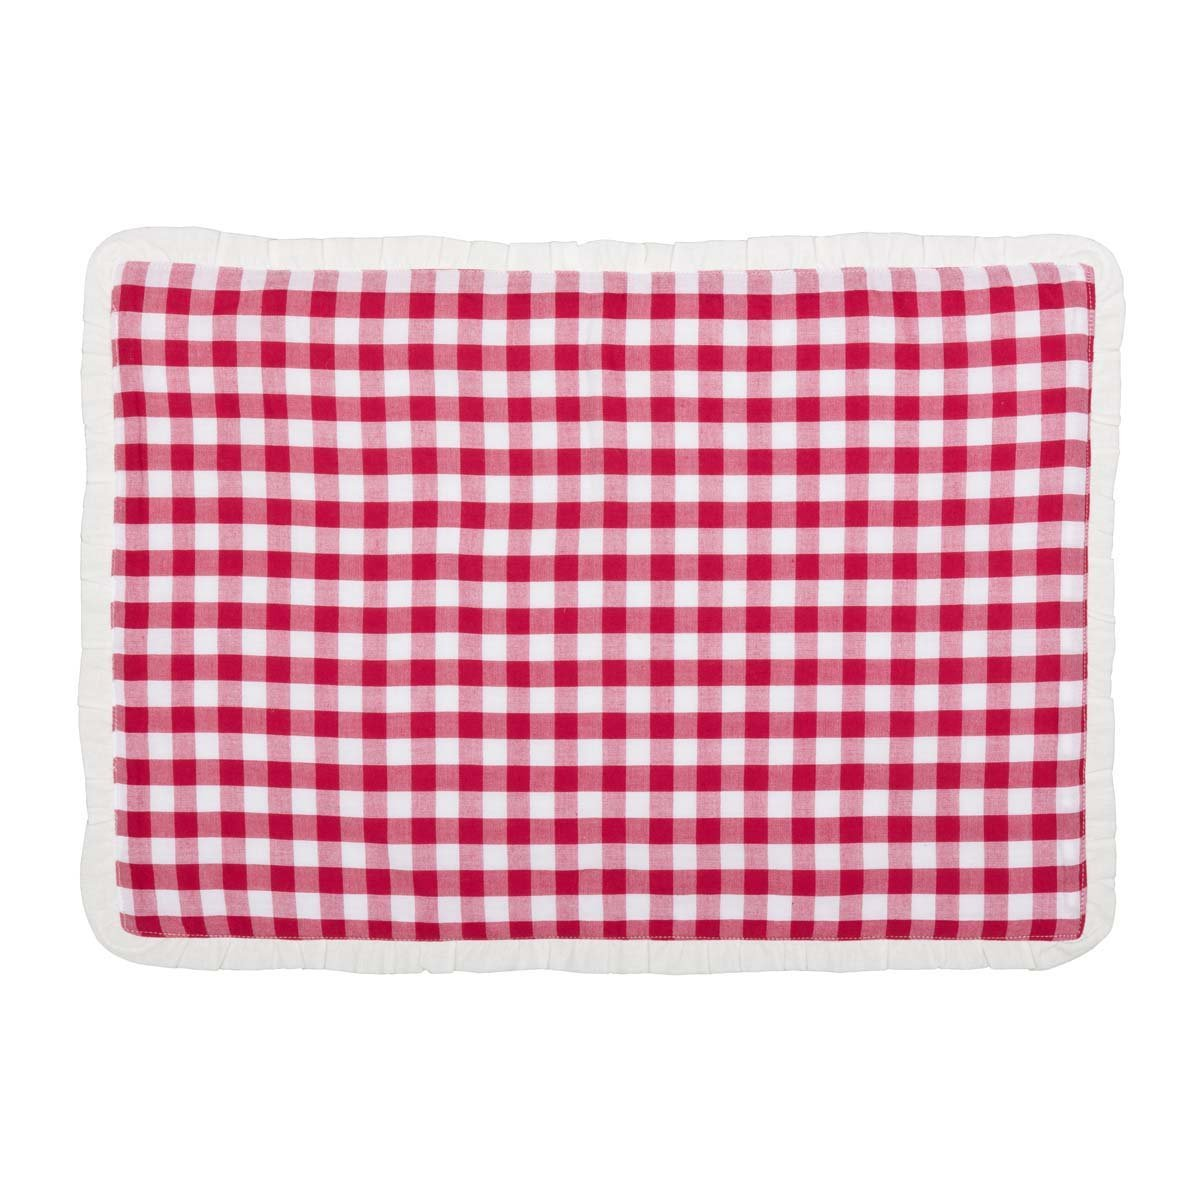 Emmie Placemat Set of 6